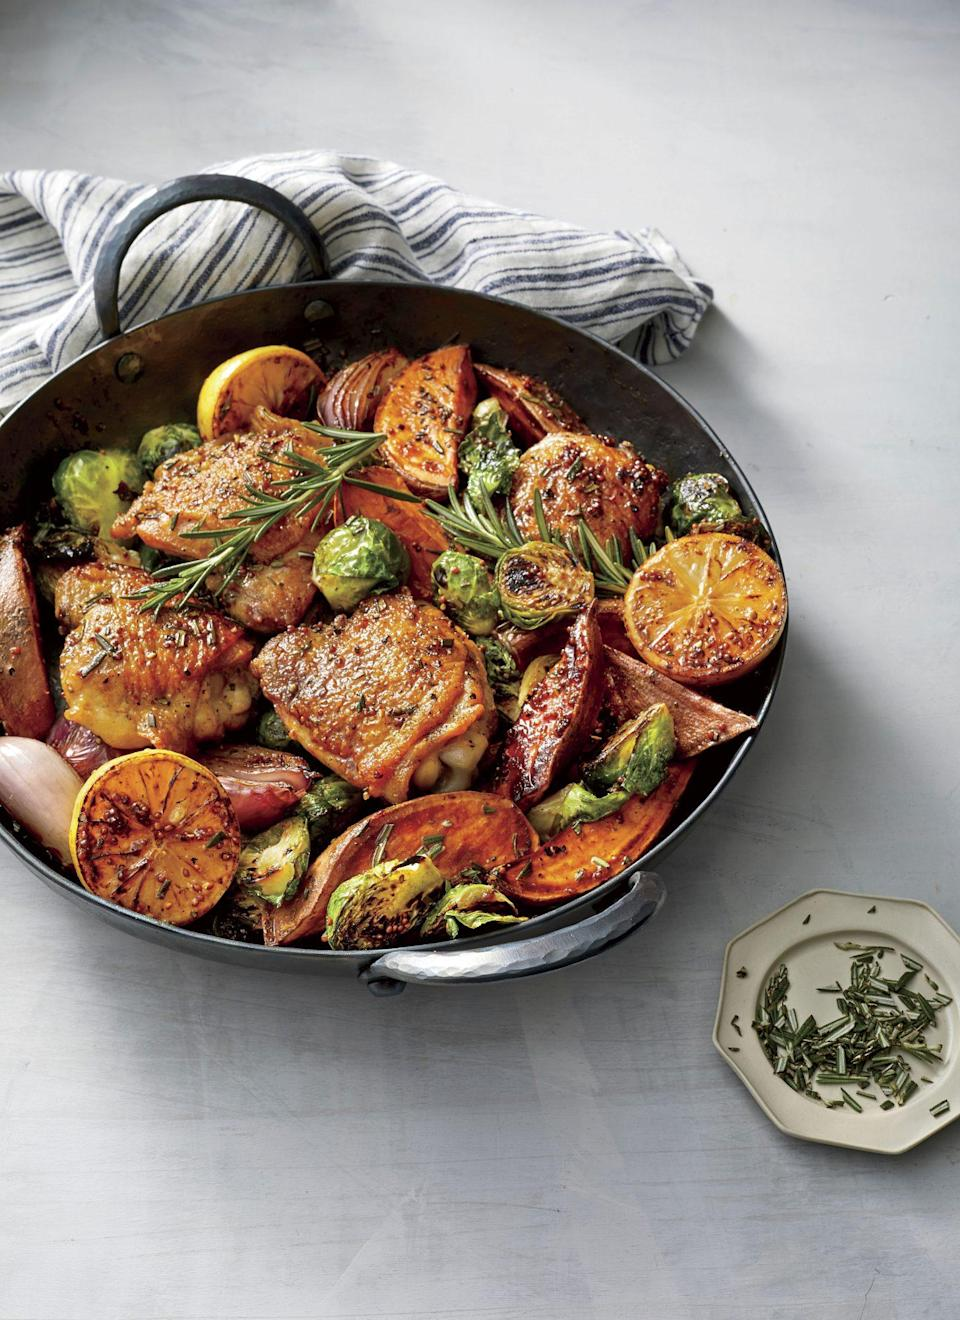 """<p><strong>Recipe: <a href=""""https://www.southernliving.com/recipes/oven-baked-chicken-thighs-vegetables"""" rel=""""nofollow noopener"""" target=""""_blank"""" data-ylk=""""slk:Oven Baked Chicken Thighs with Vegetables"""" class=""""link rapid-noclick-resp"""">Oven Baked Chicken Thighs with Vegetables</a></strong></p> <p>Bright lemon, fresh rosemary, and a homemade honey mustard mixture add so much flavor to a simple chicken-and-veggies supper. Our Test Kitchen recommends smaller chicken thighs, which tend to be juicier.</p>"""